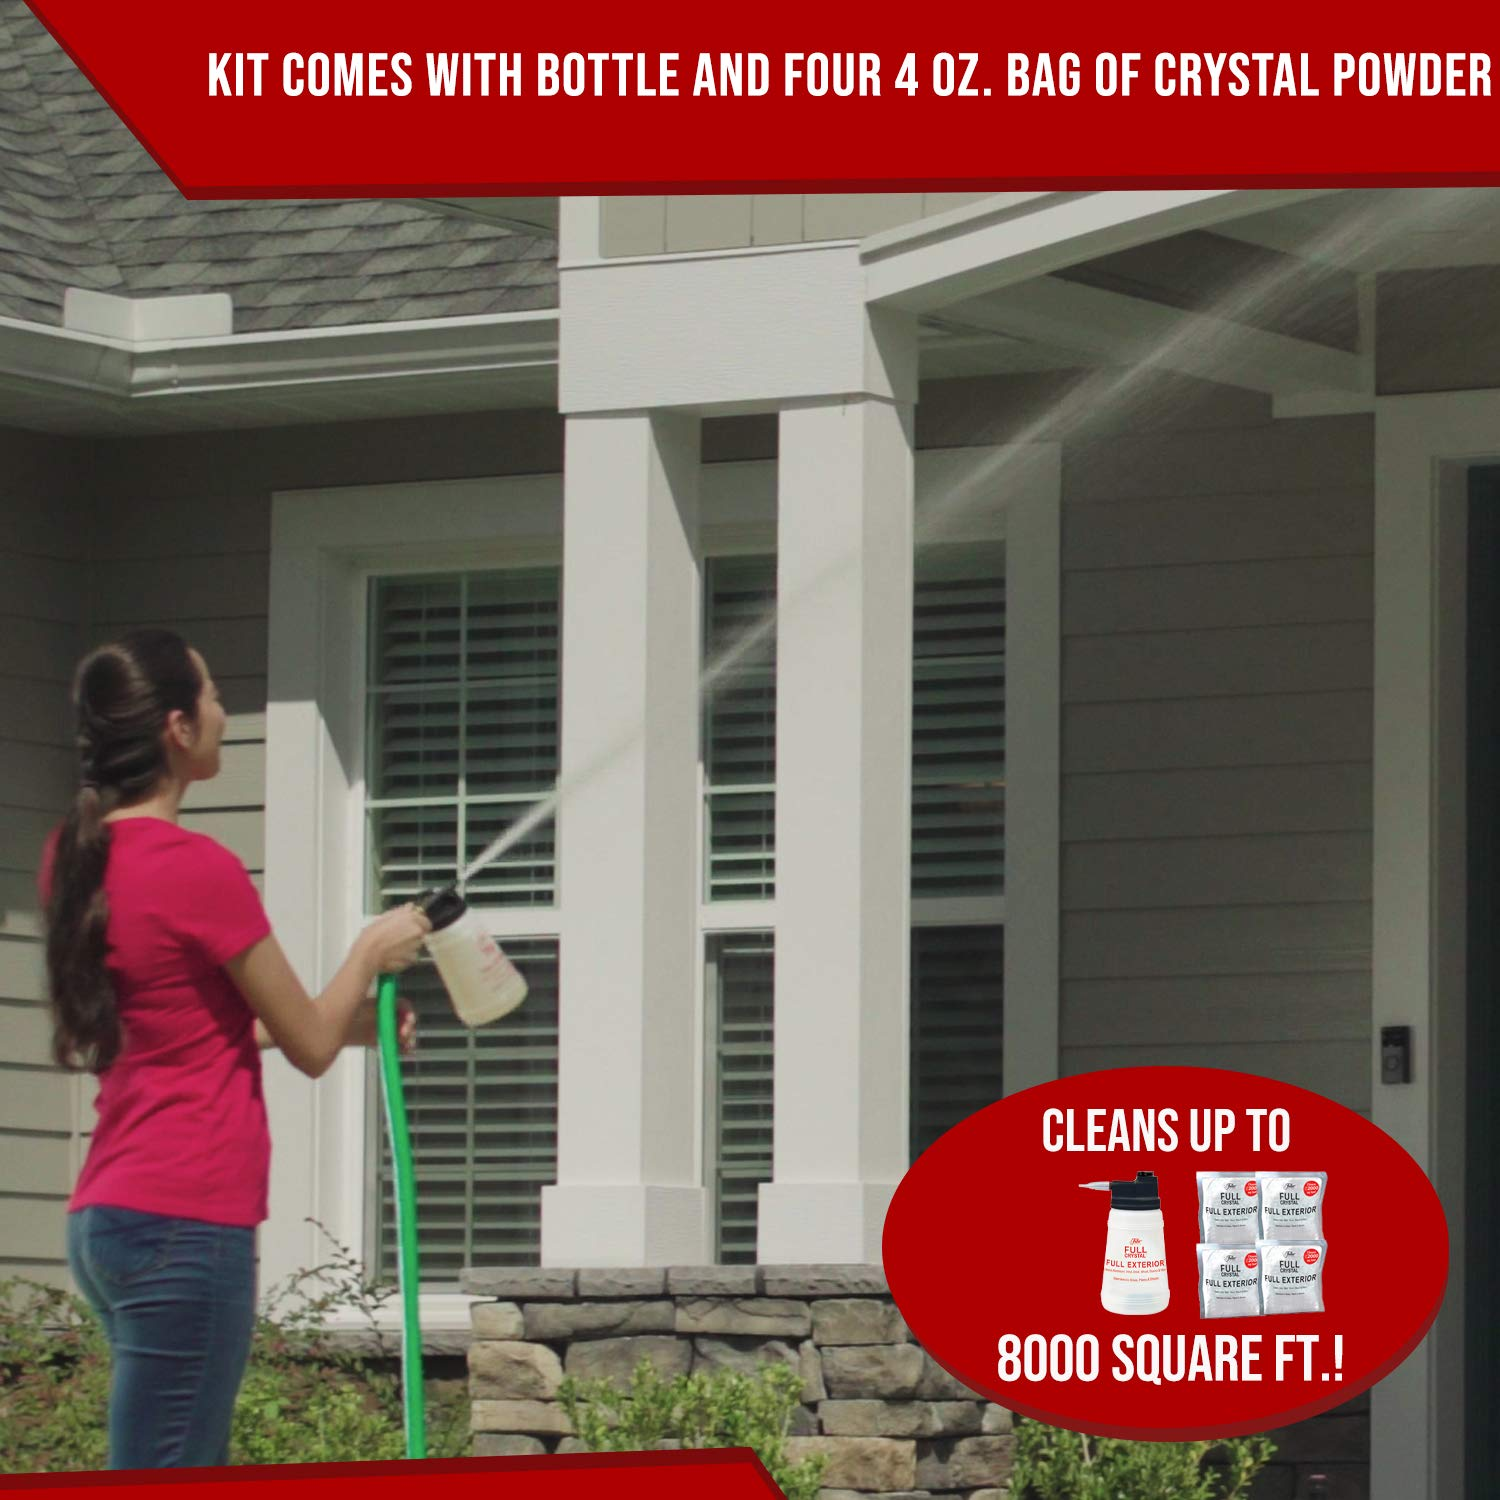 Full Exterior Kit - Bottle, Lid with Hose Attachment and 1 lb. Crystal Powder Outdoor Cleaner (Cleans Up to 8,000 Sq. Ft): Non-Toxic, No Scrub, No Rinse Cleaning Kit by Full Crystal (Image #2)